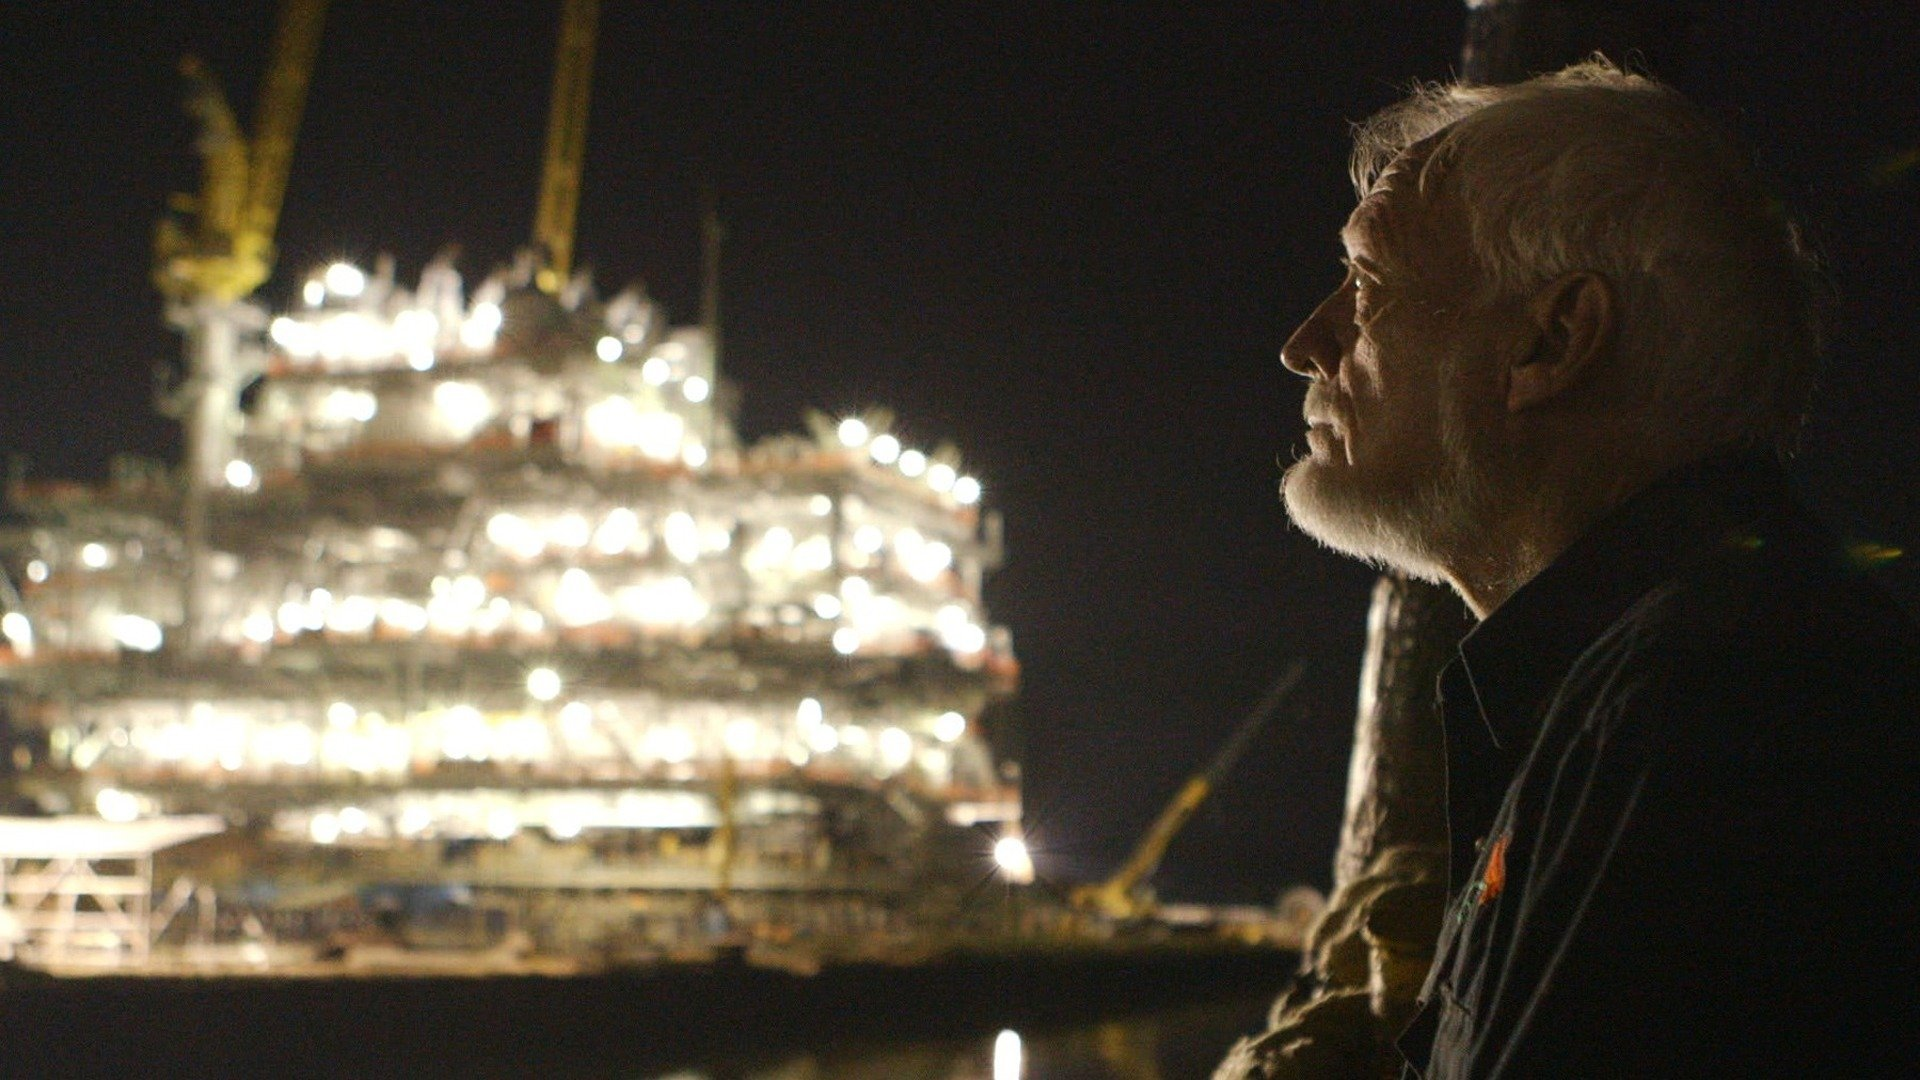 A night a man stands in silhouette in front of the blazing lights of an oil rig